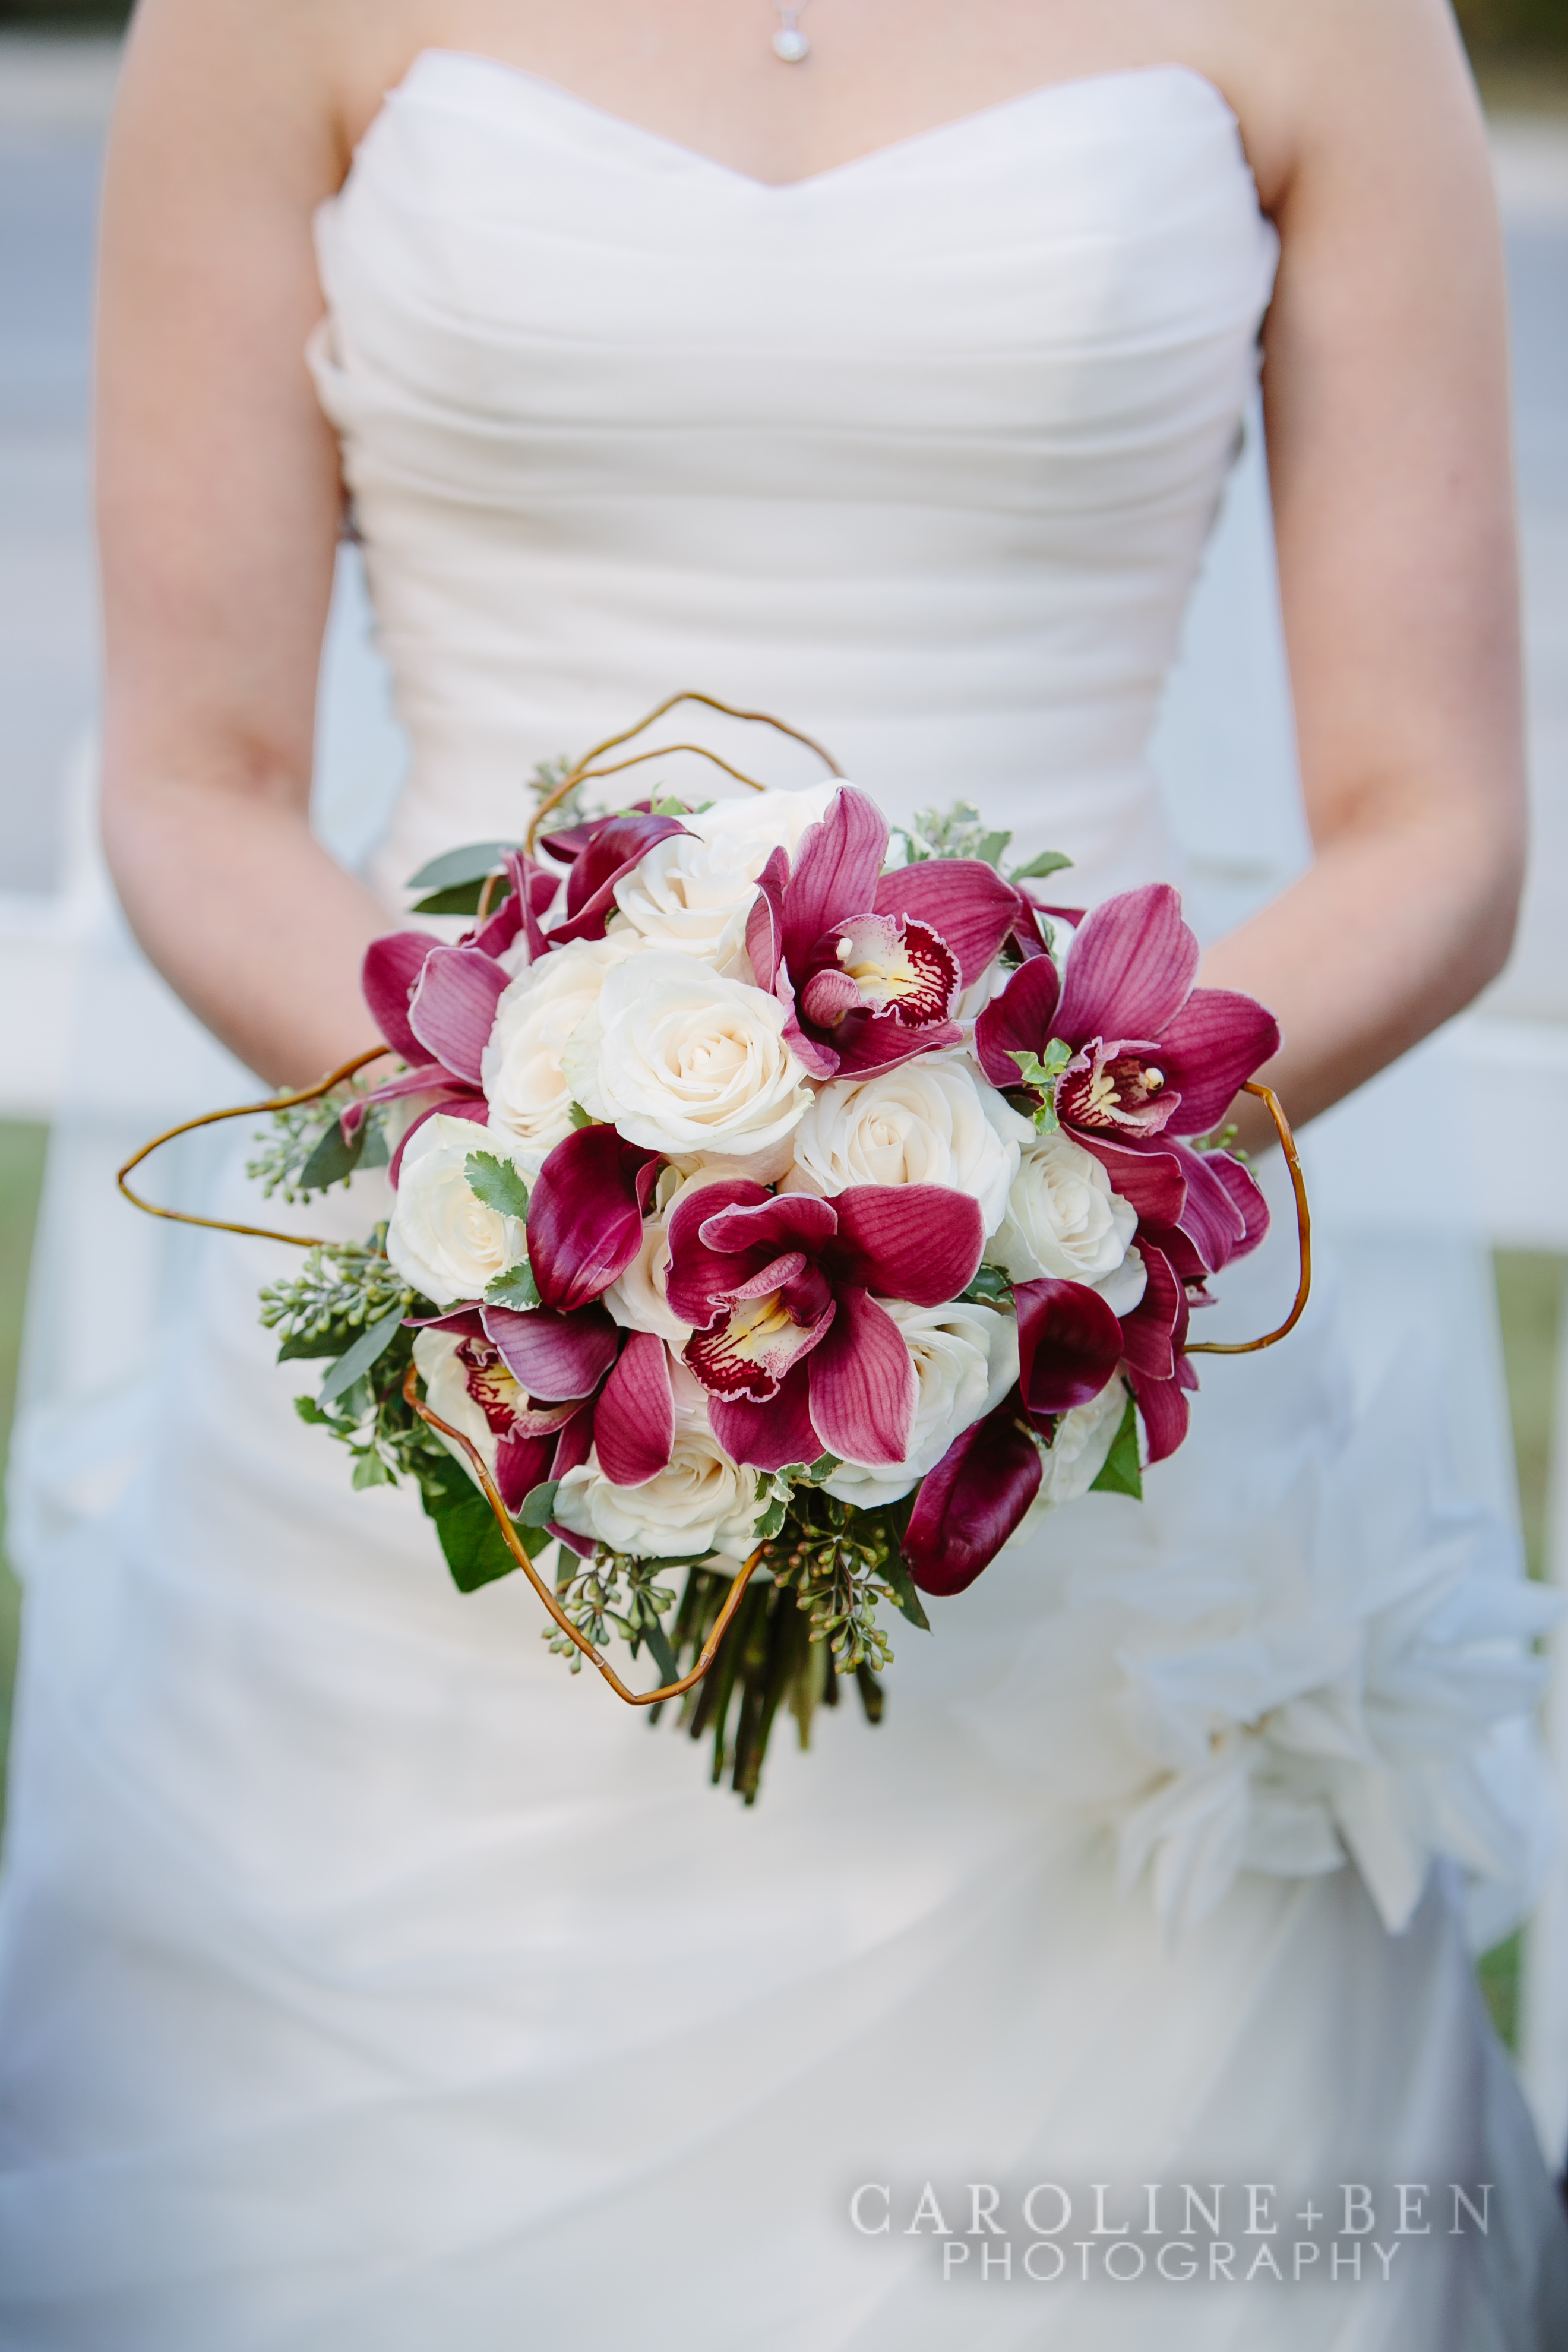 The brides bouquet with the contrasting crimson orchids and calla lilies.